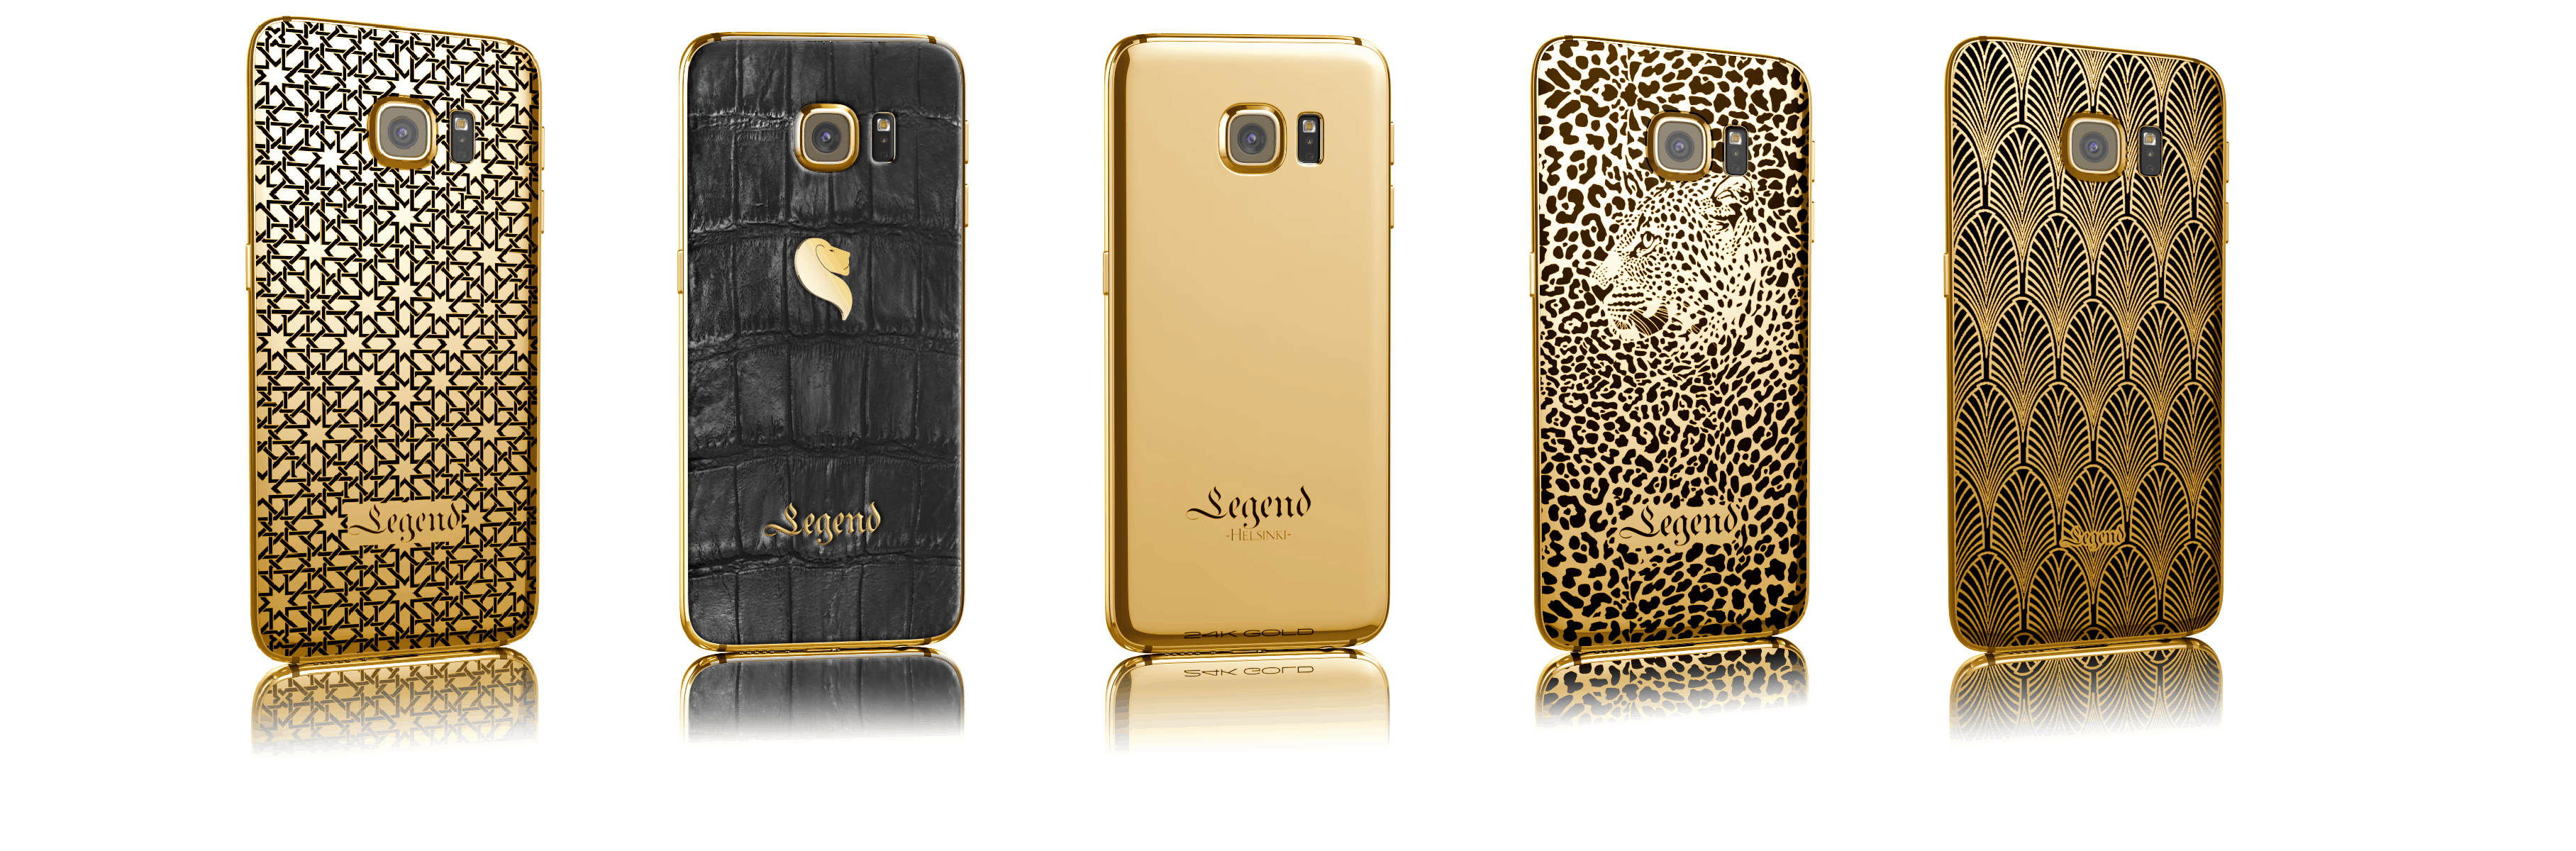 Galaxy s6 24k gold plated lineup by legend helsinki1